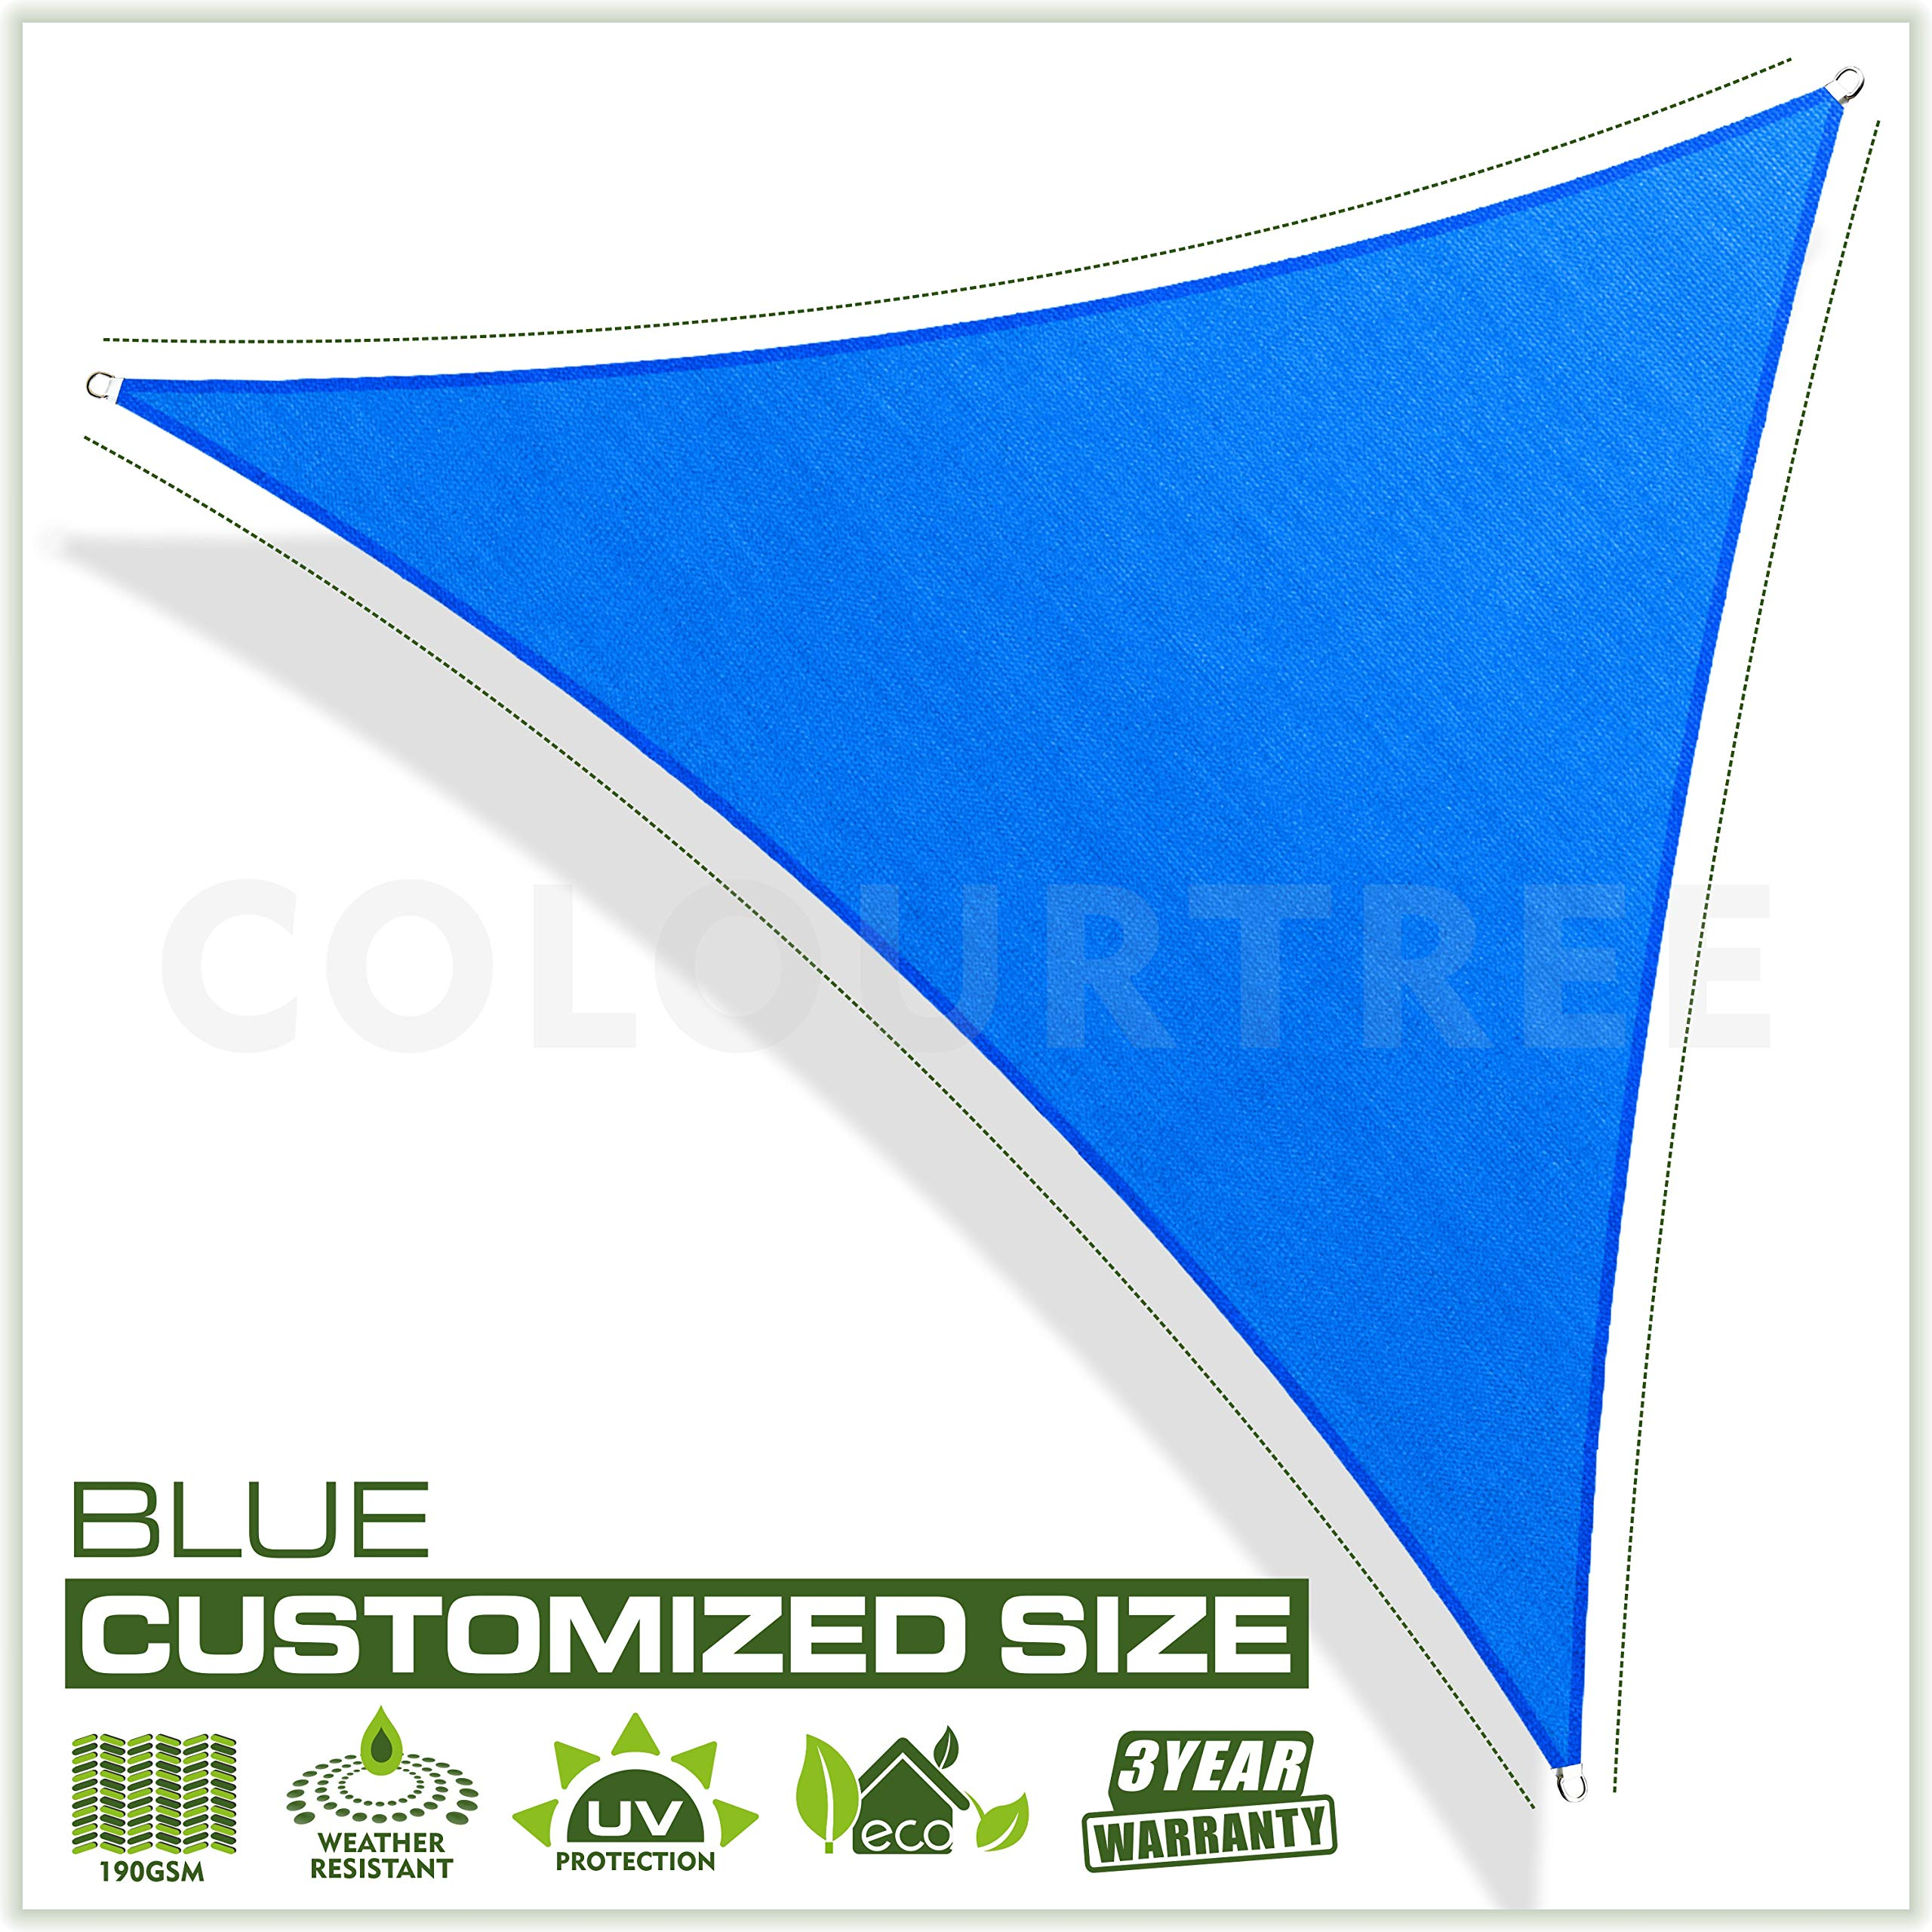 ColourTree Customized Size Order to Make Sun Shade Sail Canopy Mesh Fabric UV Block Right Triangle - Commercial Standard Heavy Duty - 190 GSM - 3 Years Warranty Right Triangle 12' x 19' x 22.5' Blue